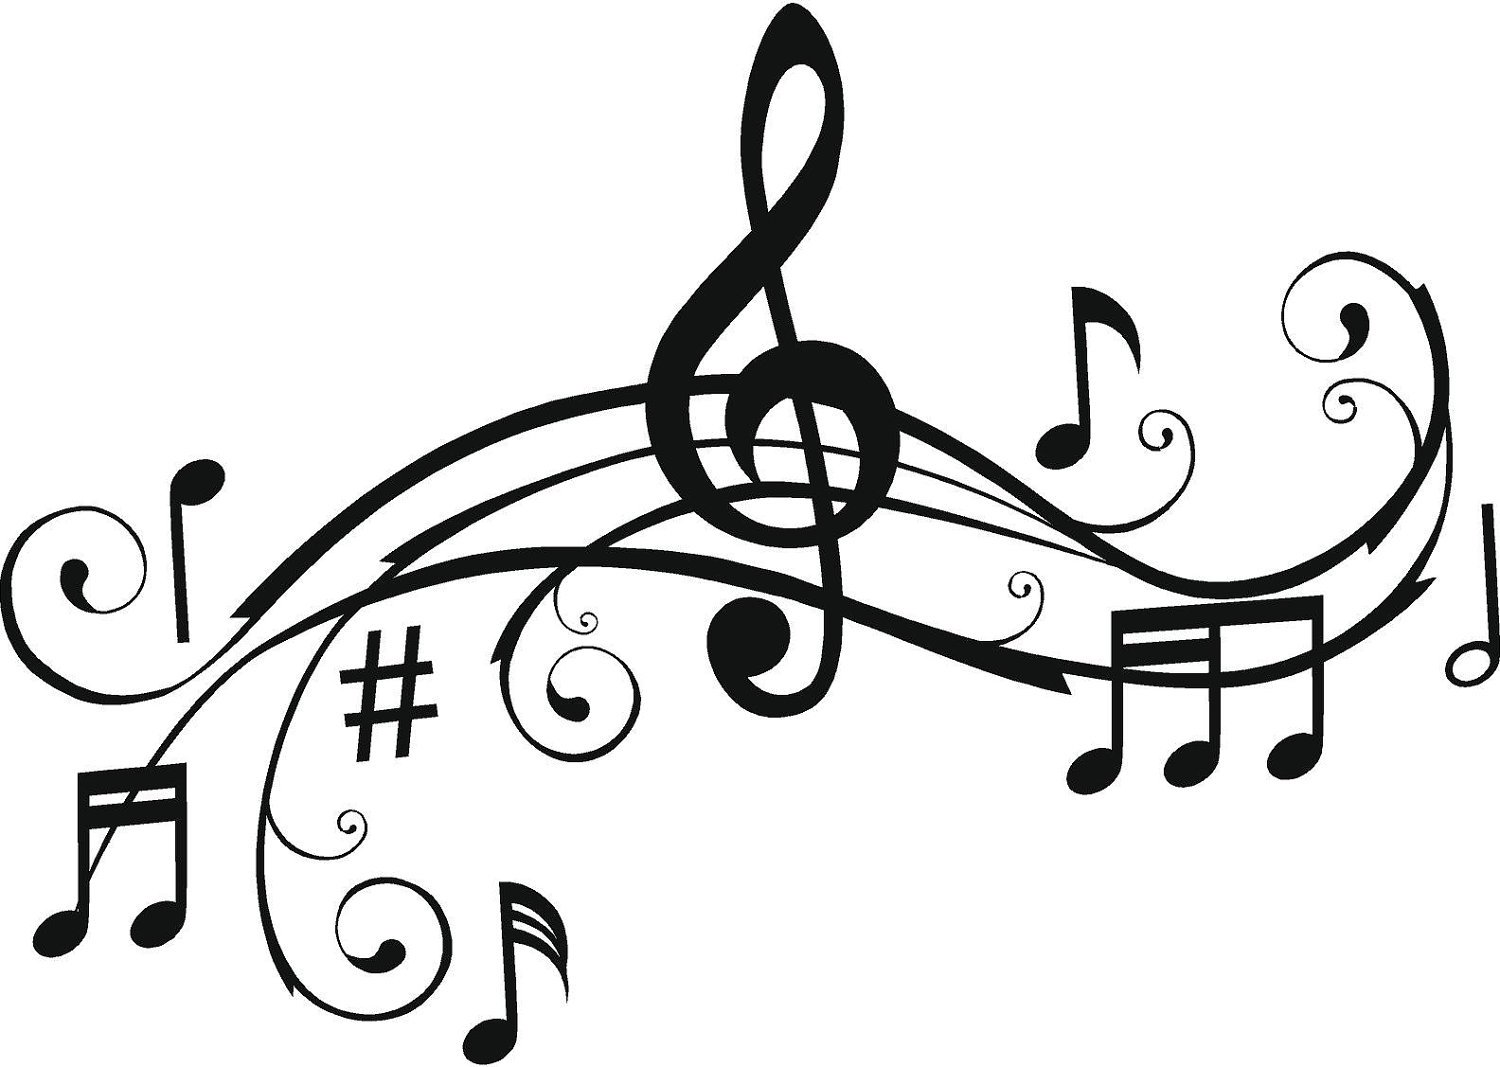 Entertainment images clipart picture freeuse download Live entertainment clipart 5 » Clipart Portal picture freeuse download